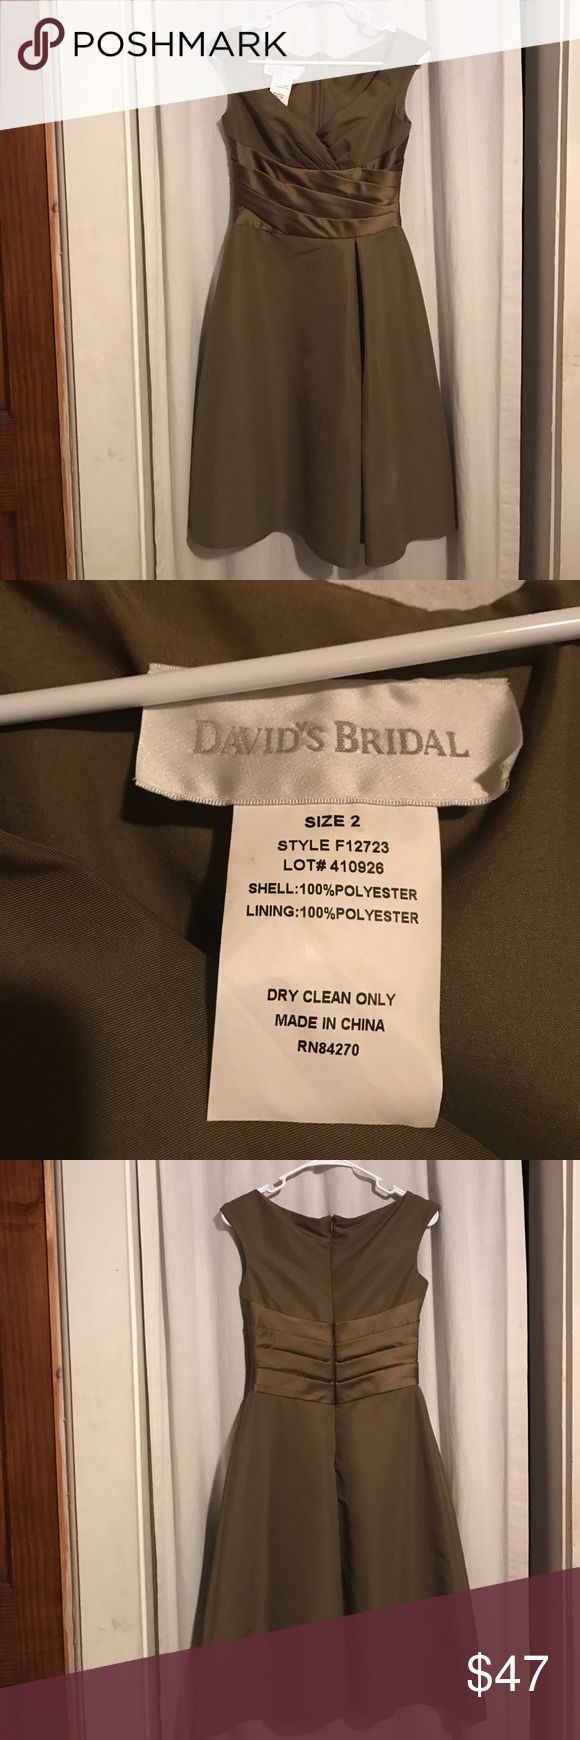 David's Bridal Dinner Party Dress Olive Green dinner party dress. Only worn one time. Excellent condition David's Bridal Dresses Wedding